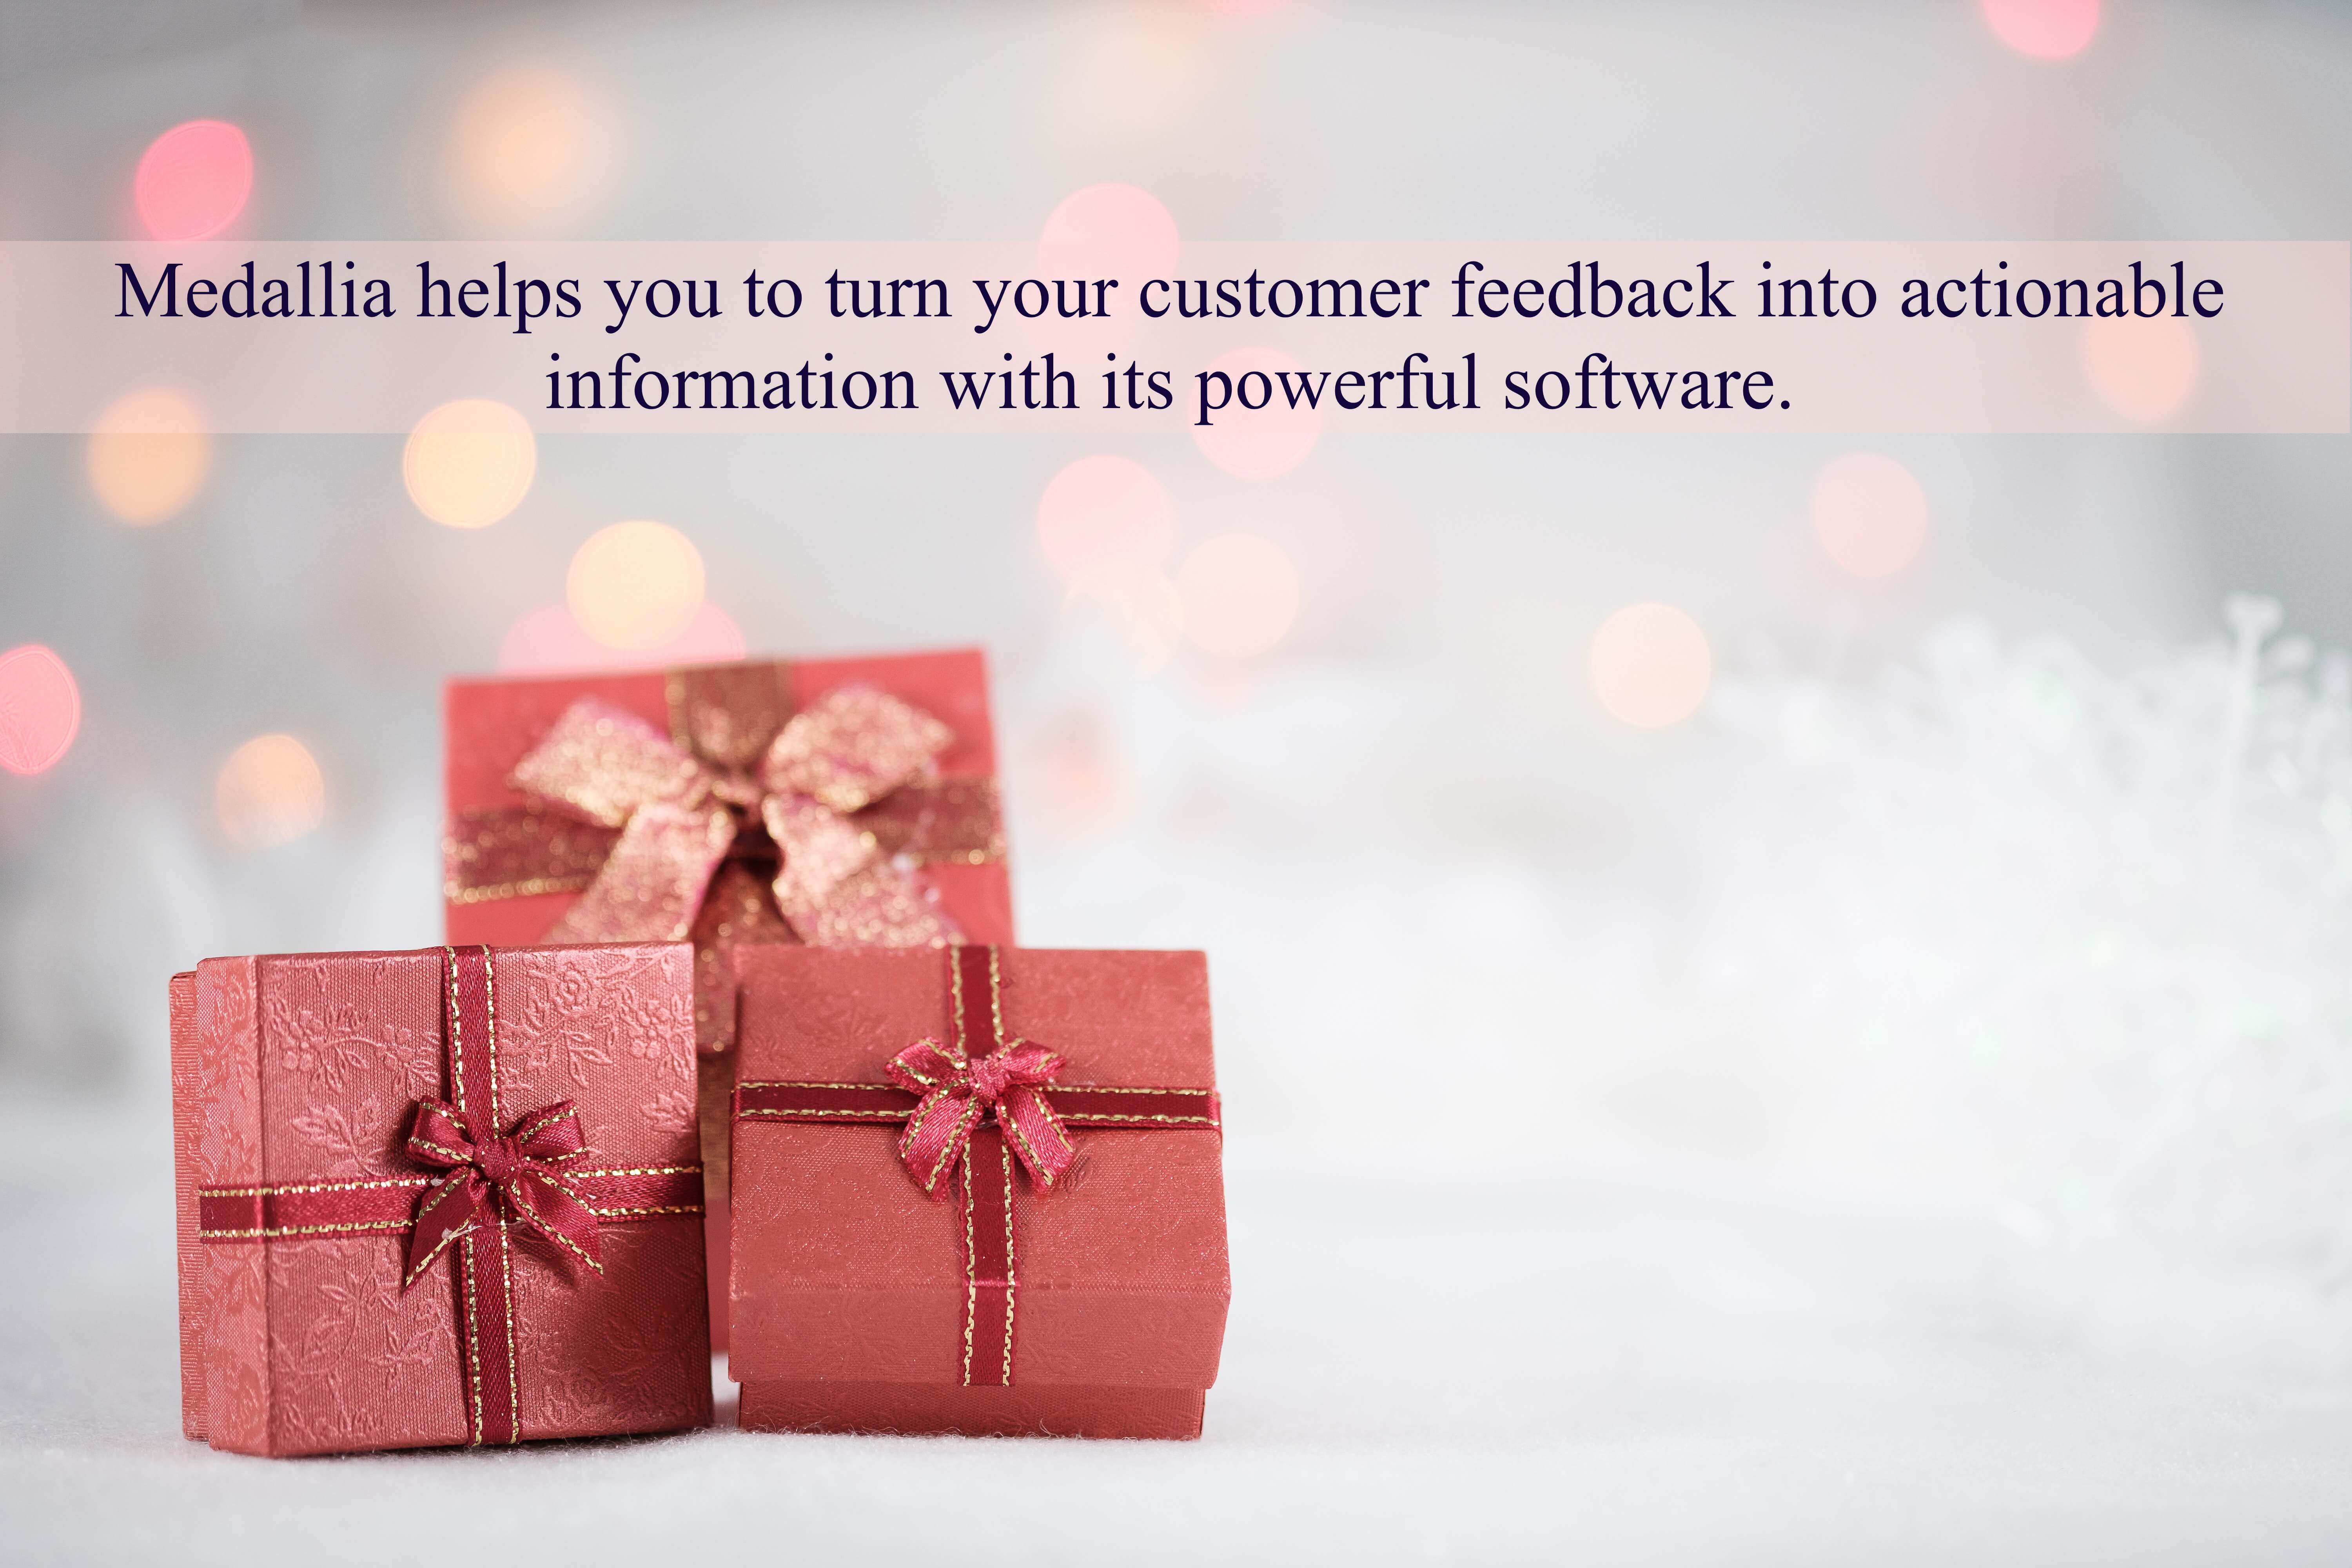 Medallia helps you to turn your customer feedback into actionable information with its powerful software.